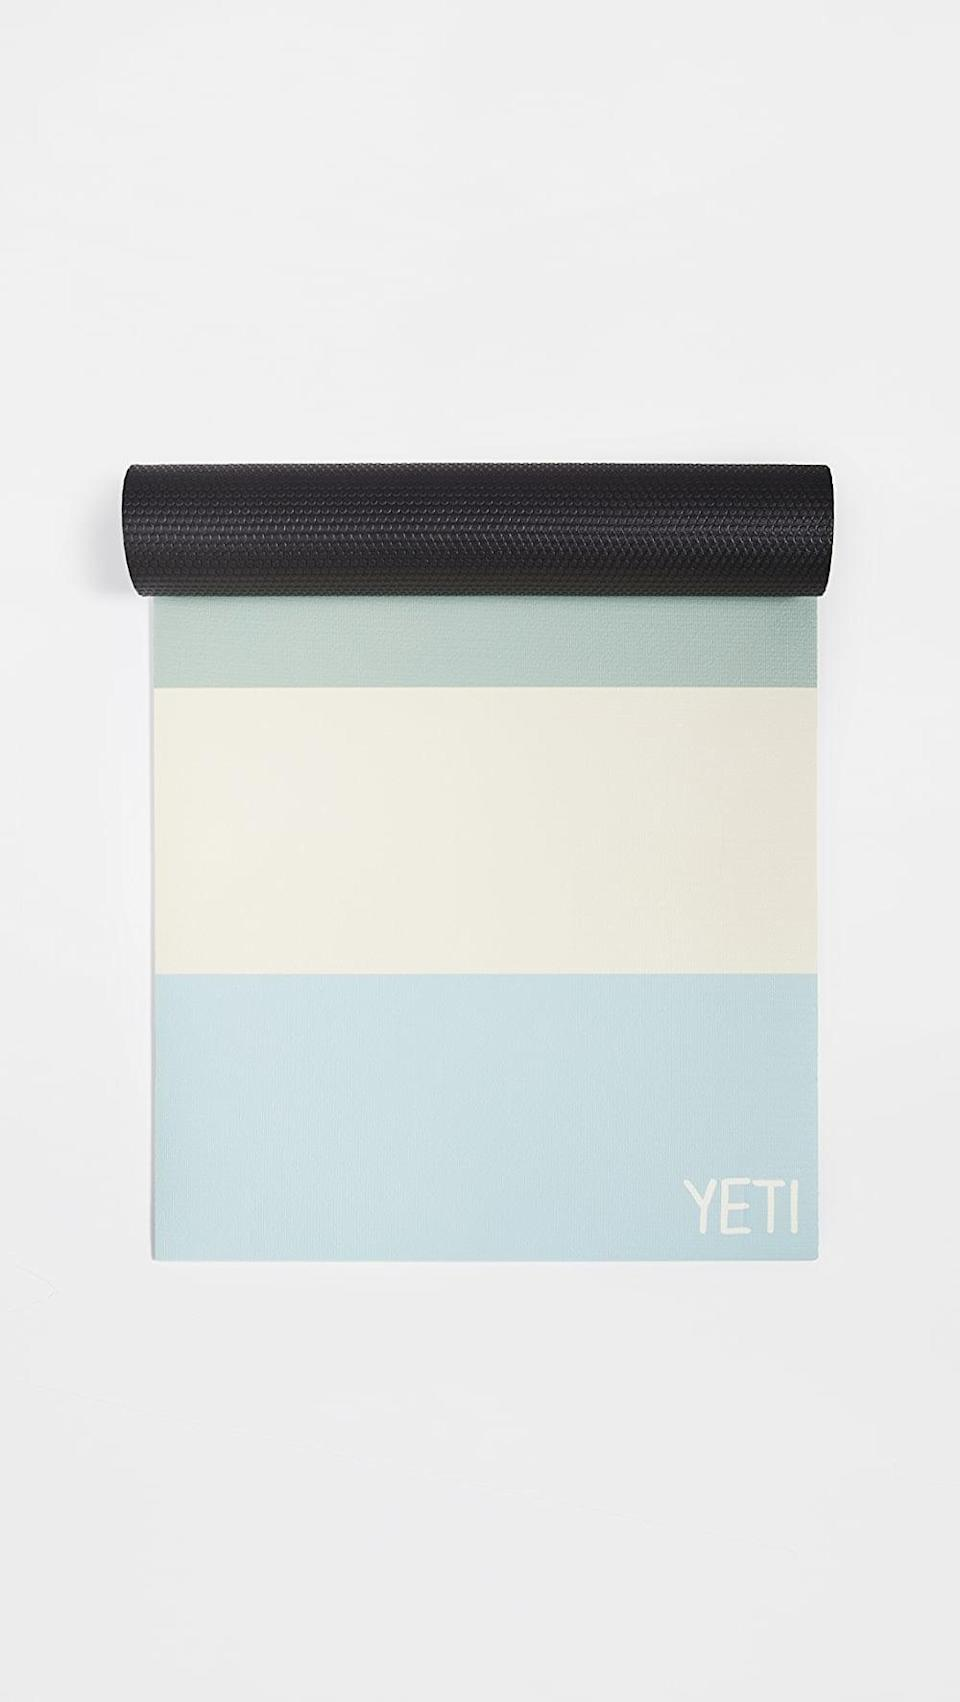 <p>This <span>Yeti Yoga The Malibu Yoga Mat</span> ($60) is a high quality mat made to practice your crow pose.</p>